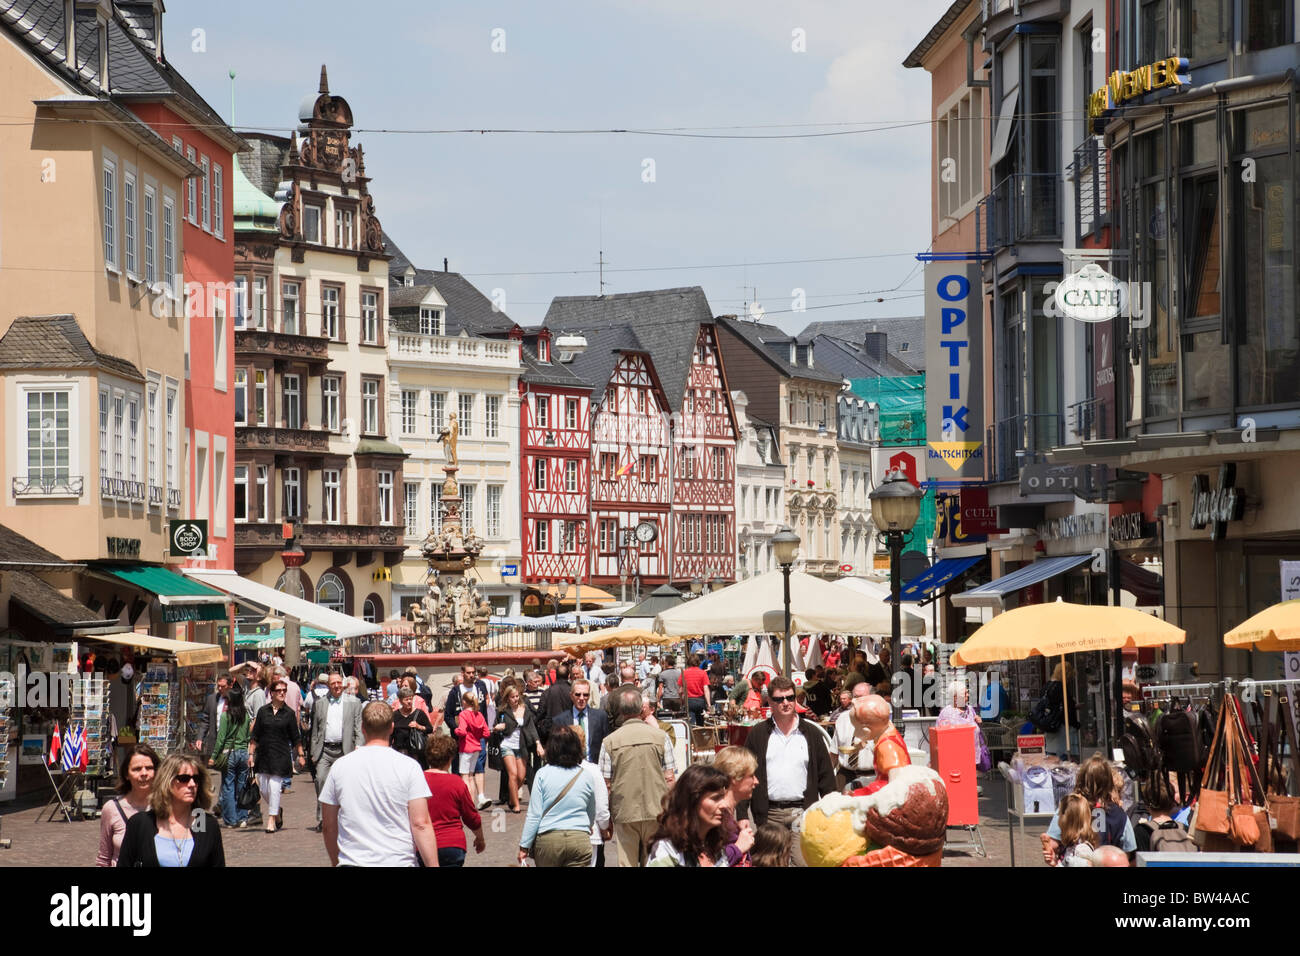 Trier, Rhineland-Palatinate, Germany, Europe. Busy street scene in oldest German city - Stock Image